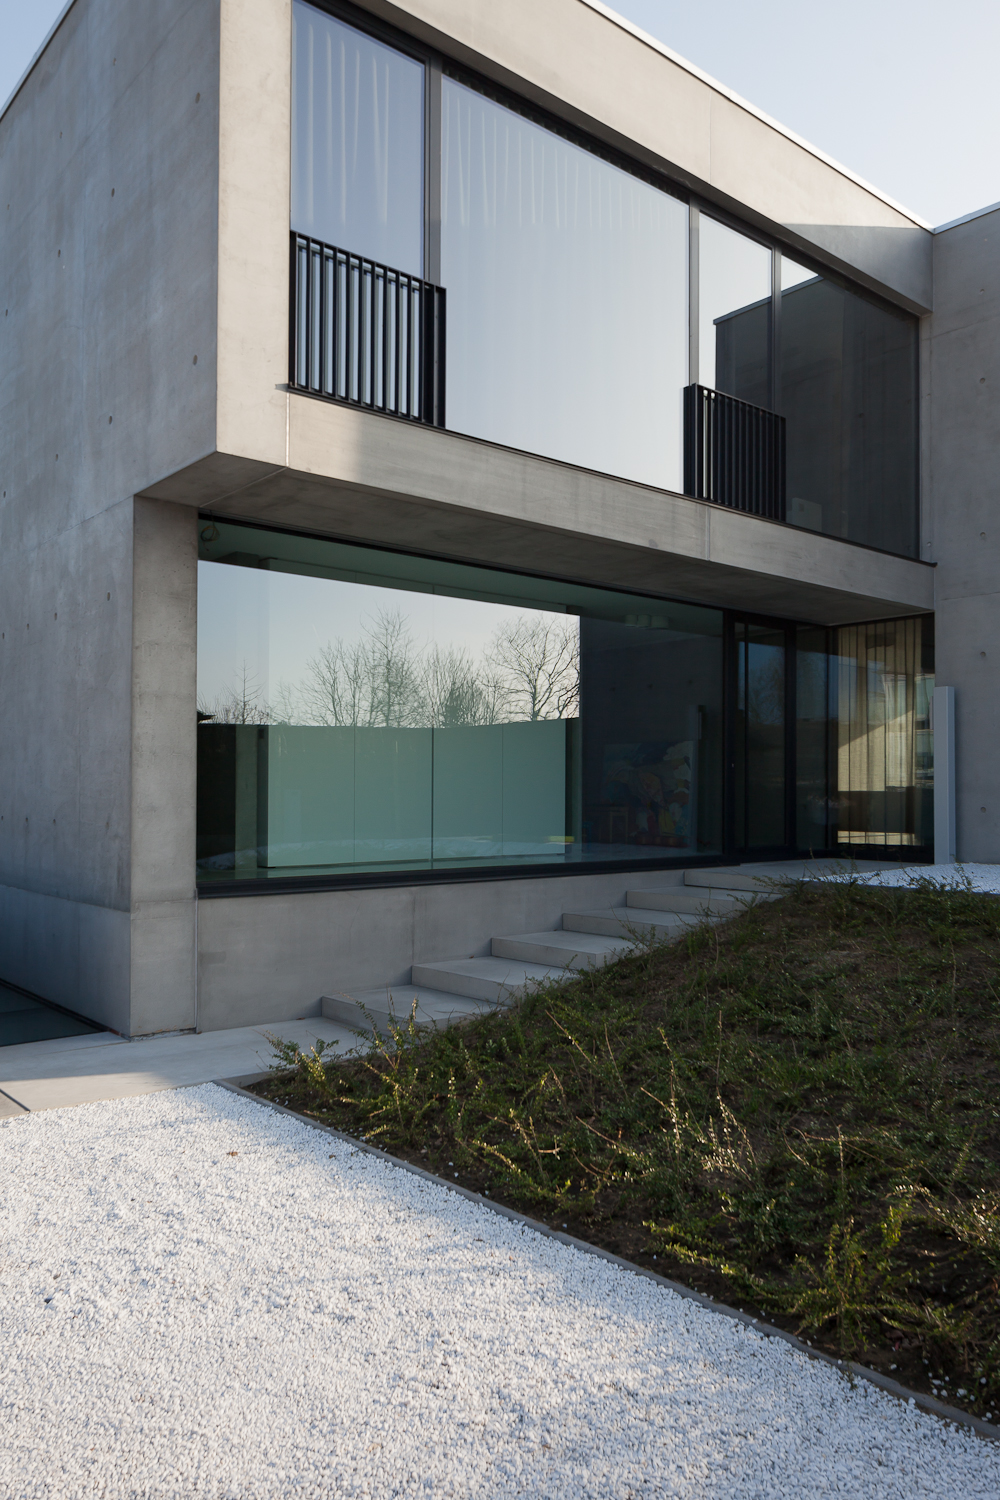 beton architectuur in waregem b de architect